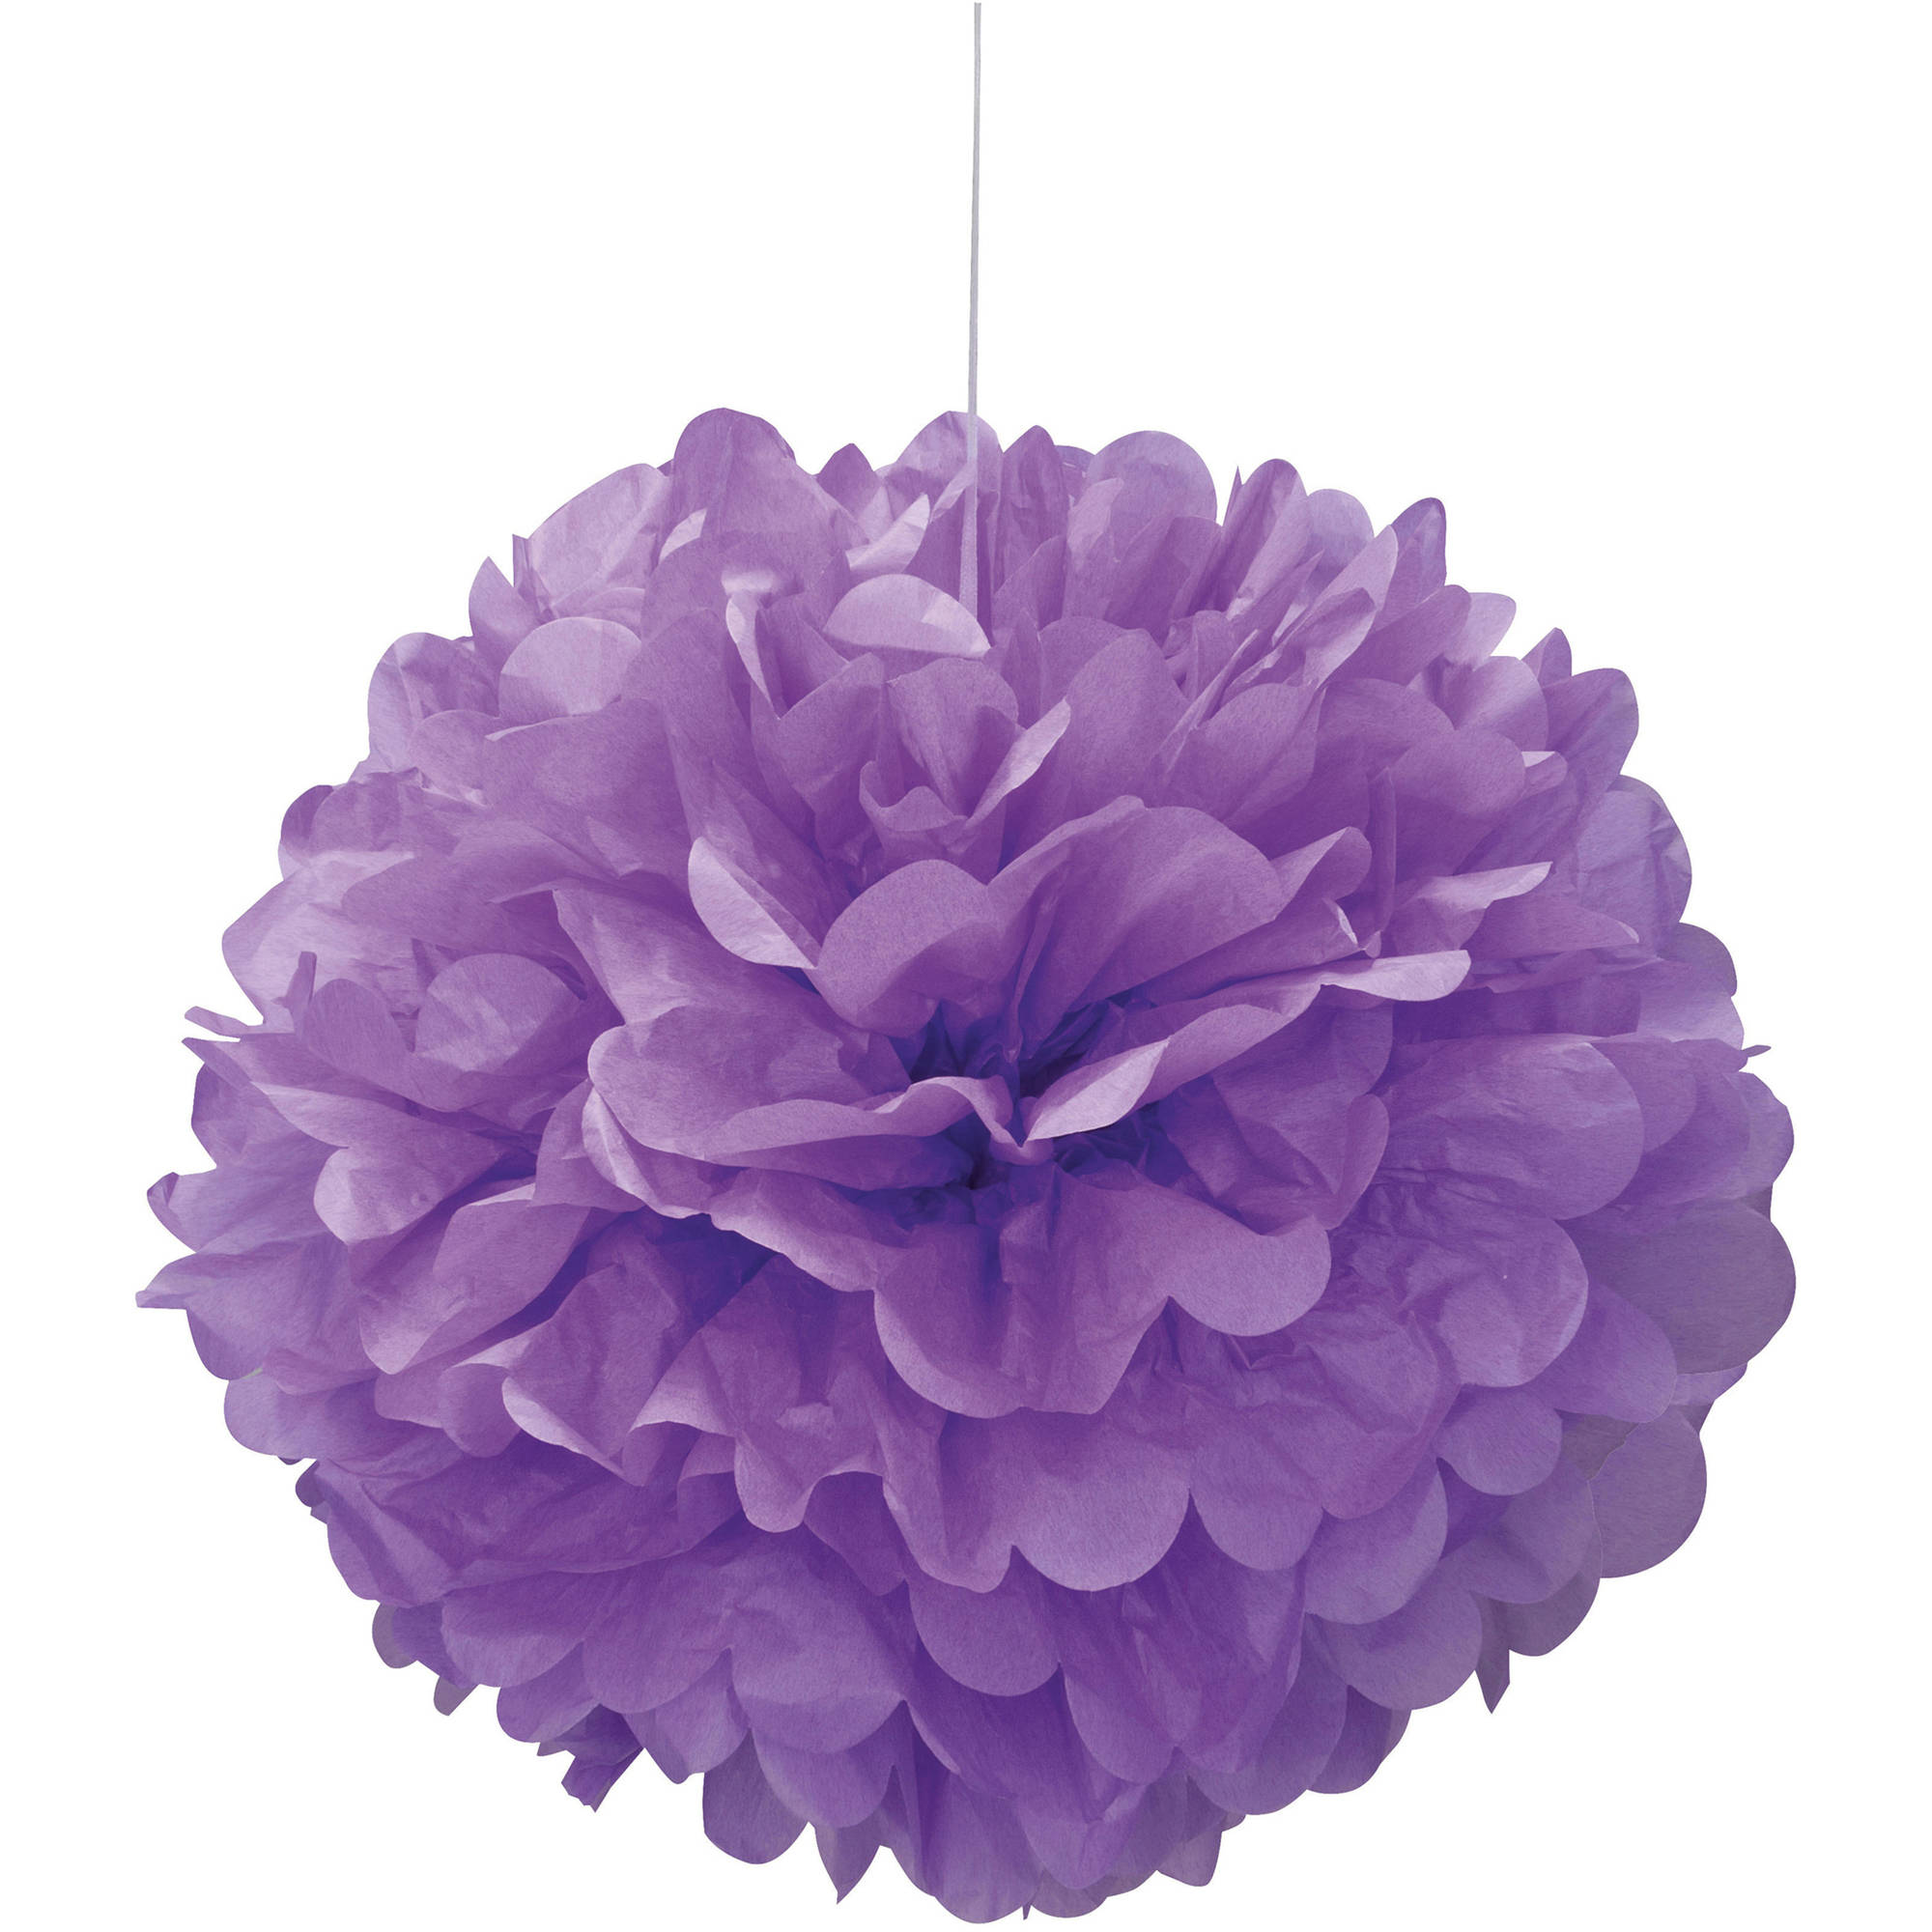 Tissue Paper Pom Pom, 16 in, Purple, 1ct